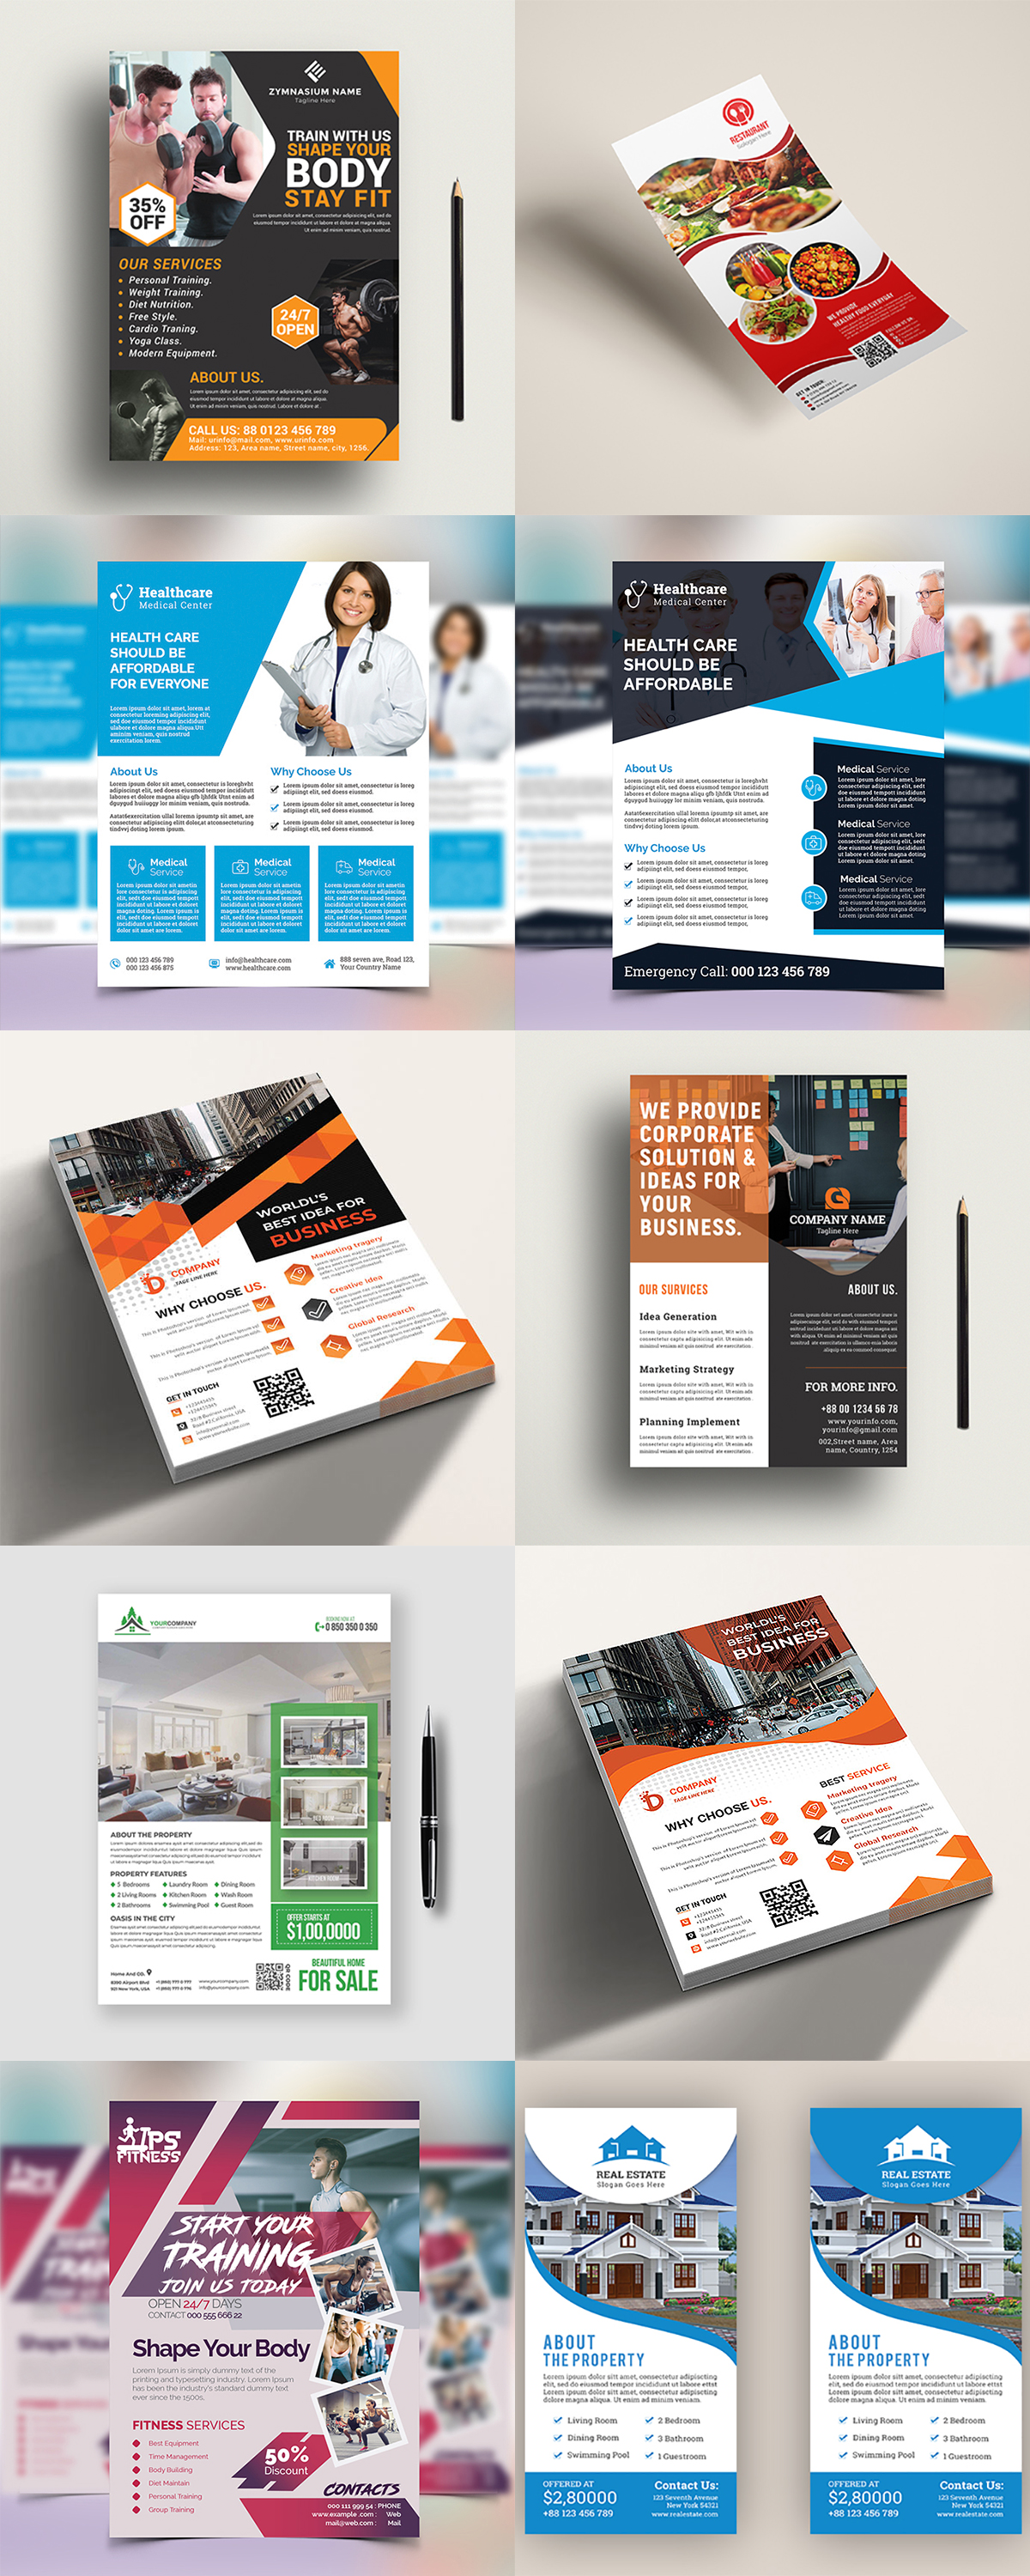 120 Concert Flyer Templates Bundle with Extended License - images 4